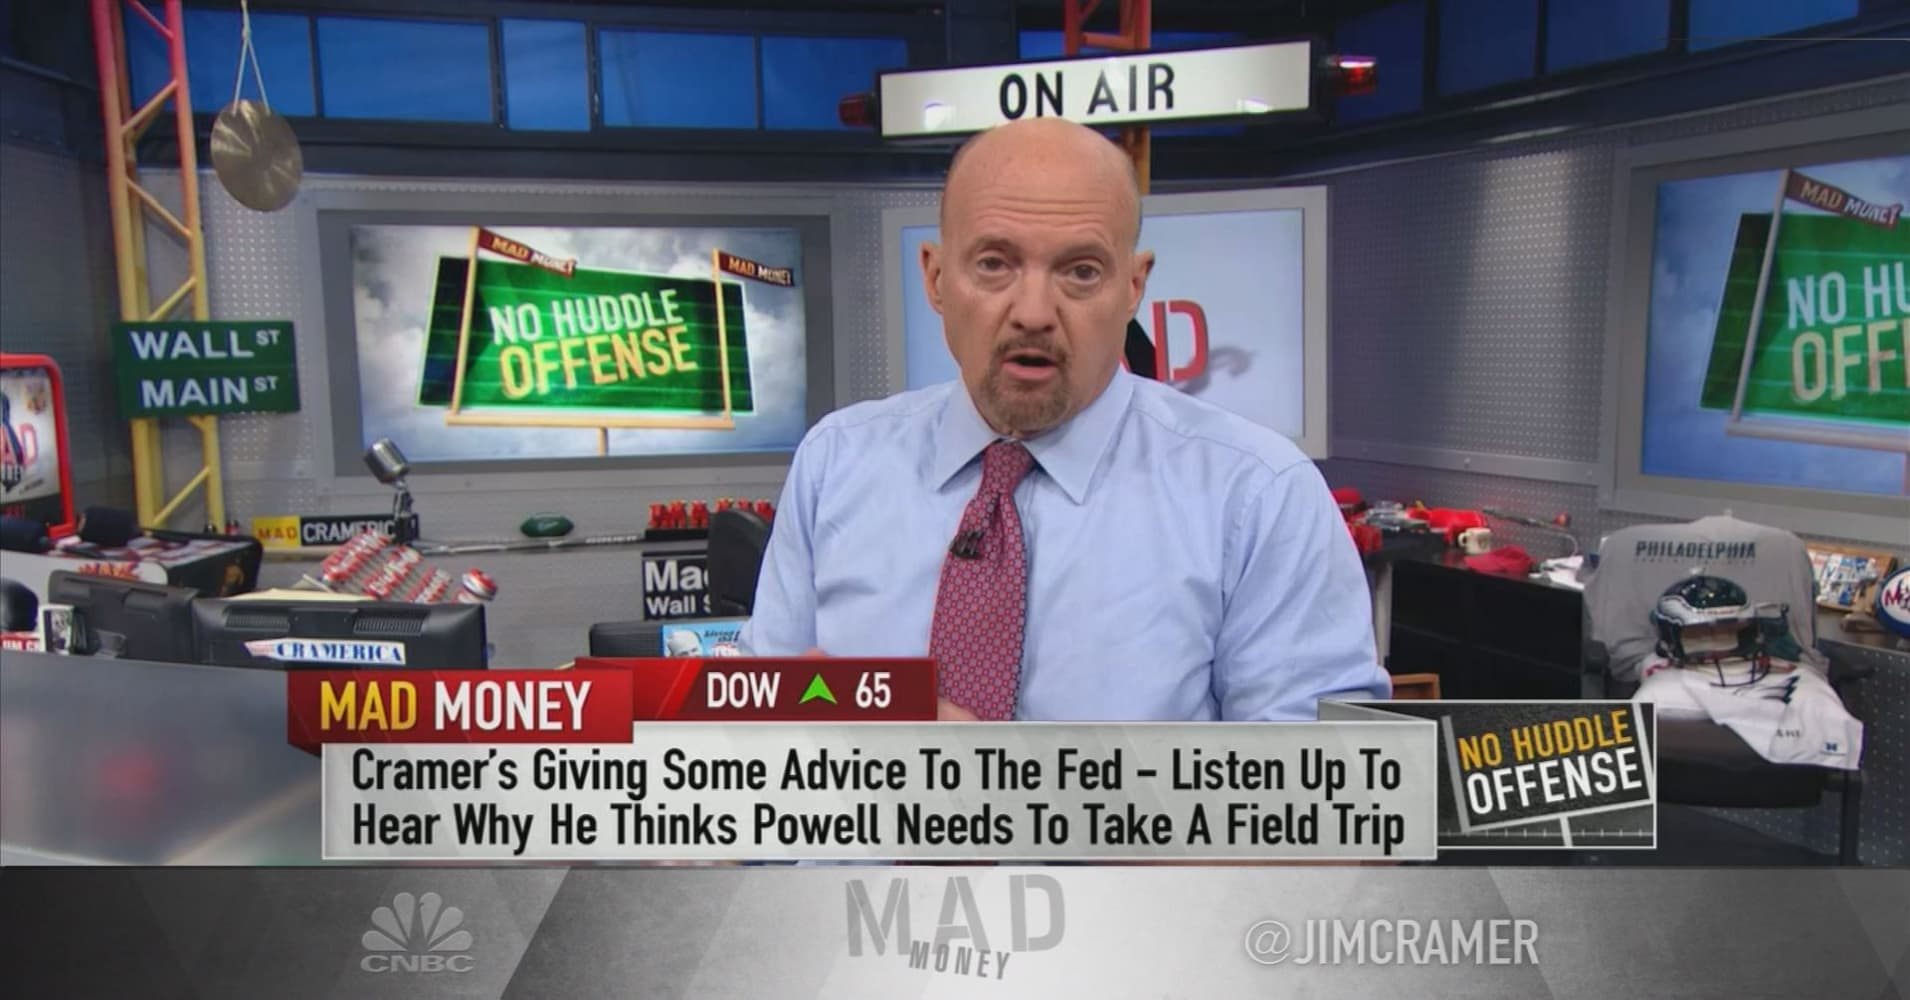 Cramer to Fed: Consider jobs wiped out by technology before hiking rates